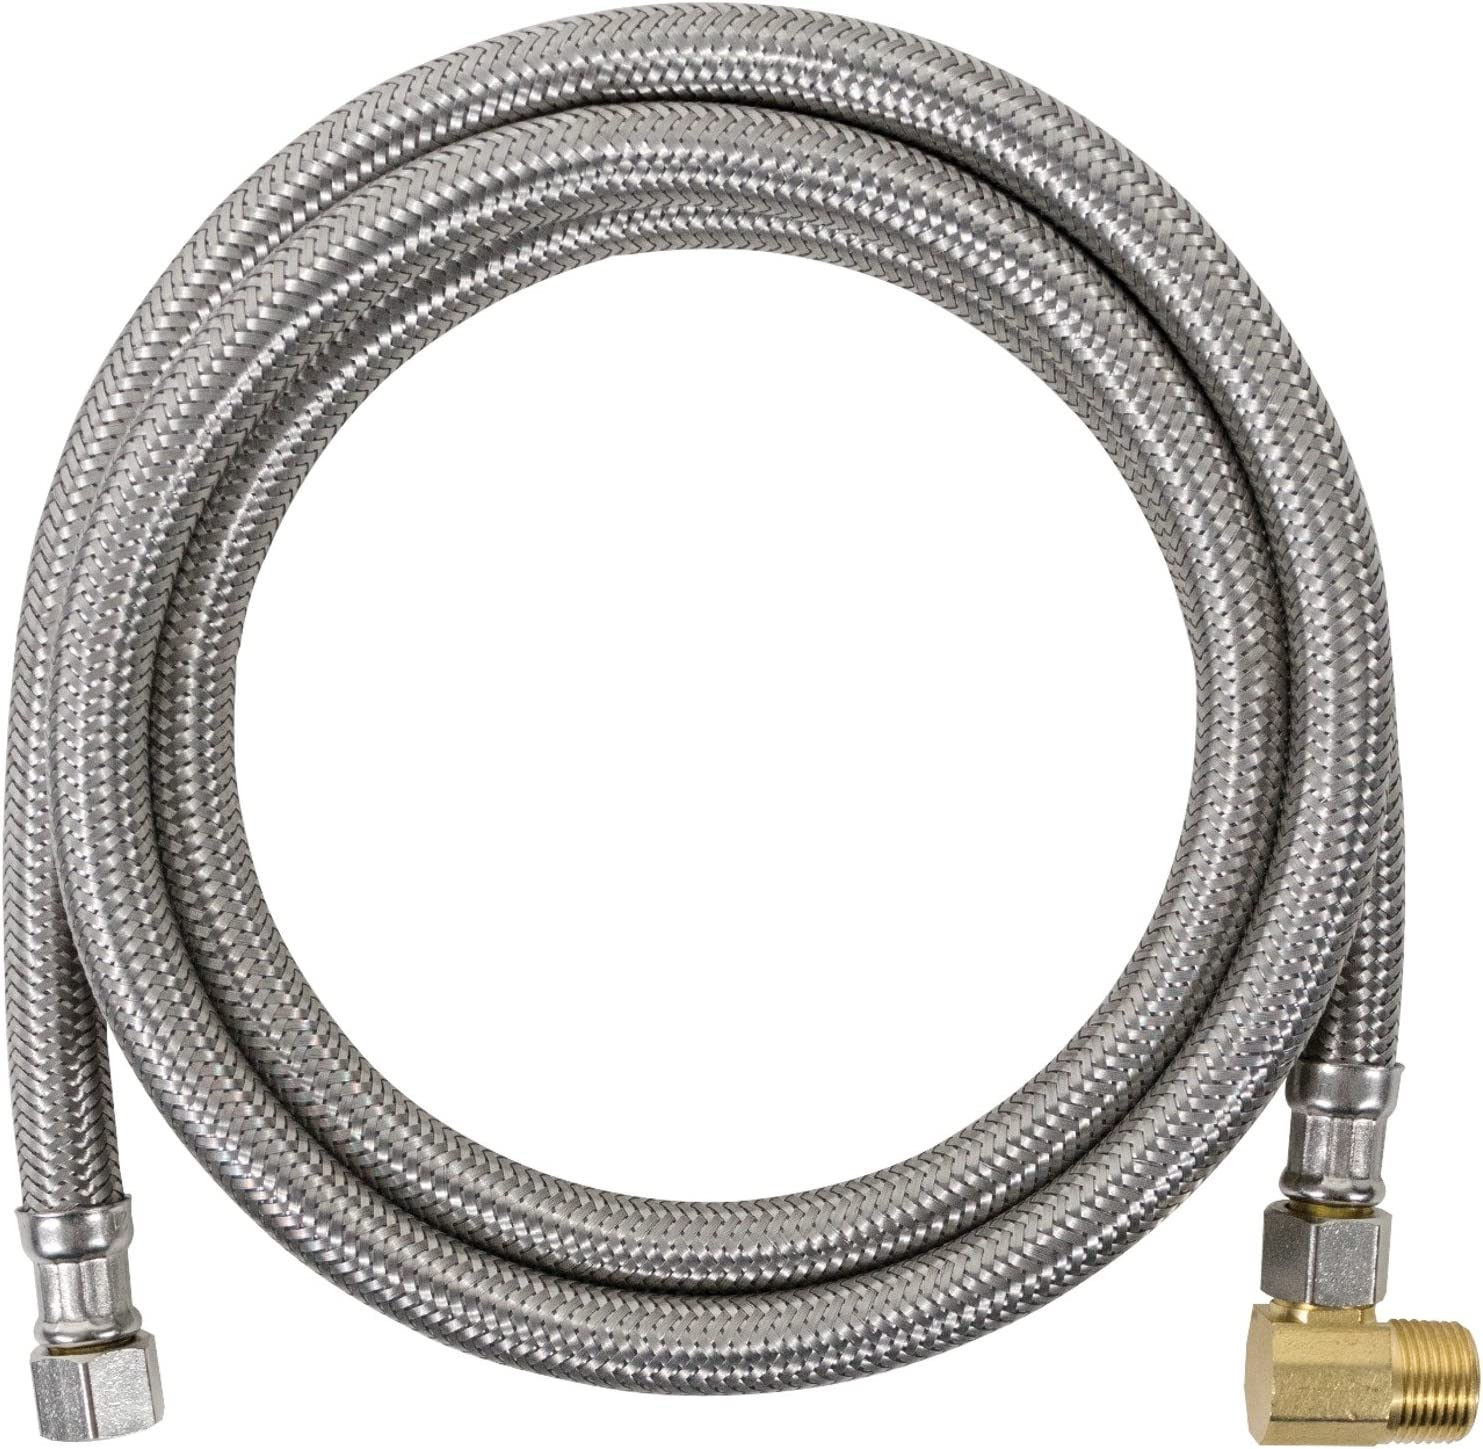 Certified Appliance Accessories Dishwasher Hose with 90 Degree MCM Elbow, Water Supply Line, 4 Feet, PVC Core with Premium Braided Stainless Steel